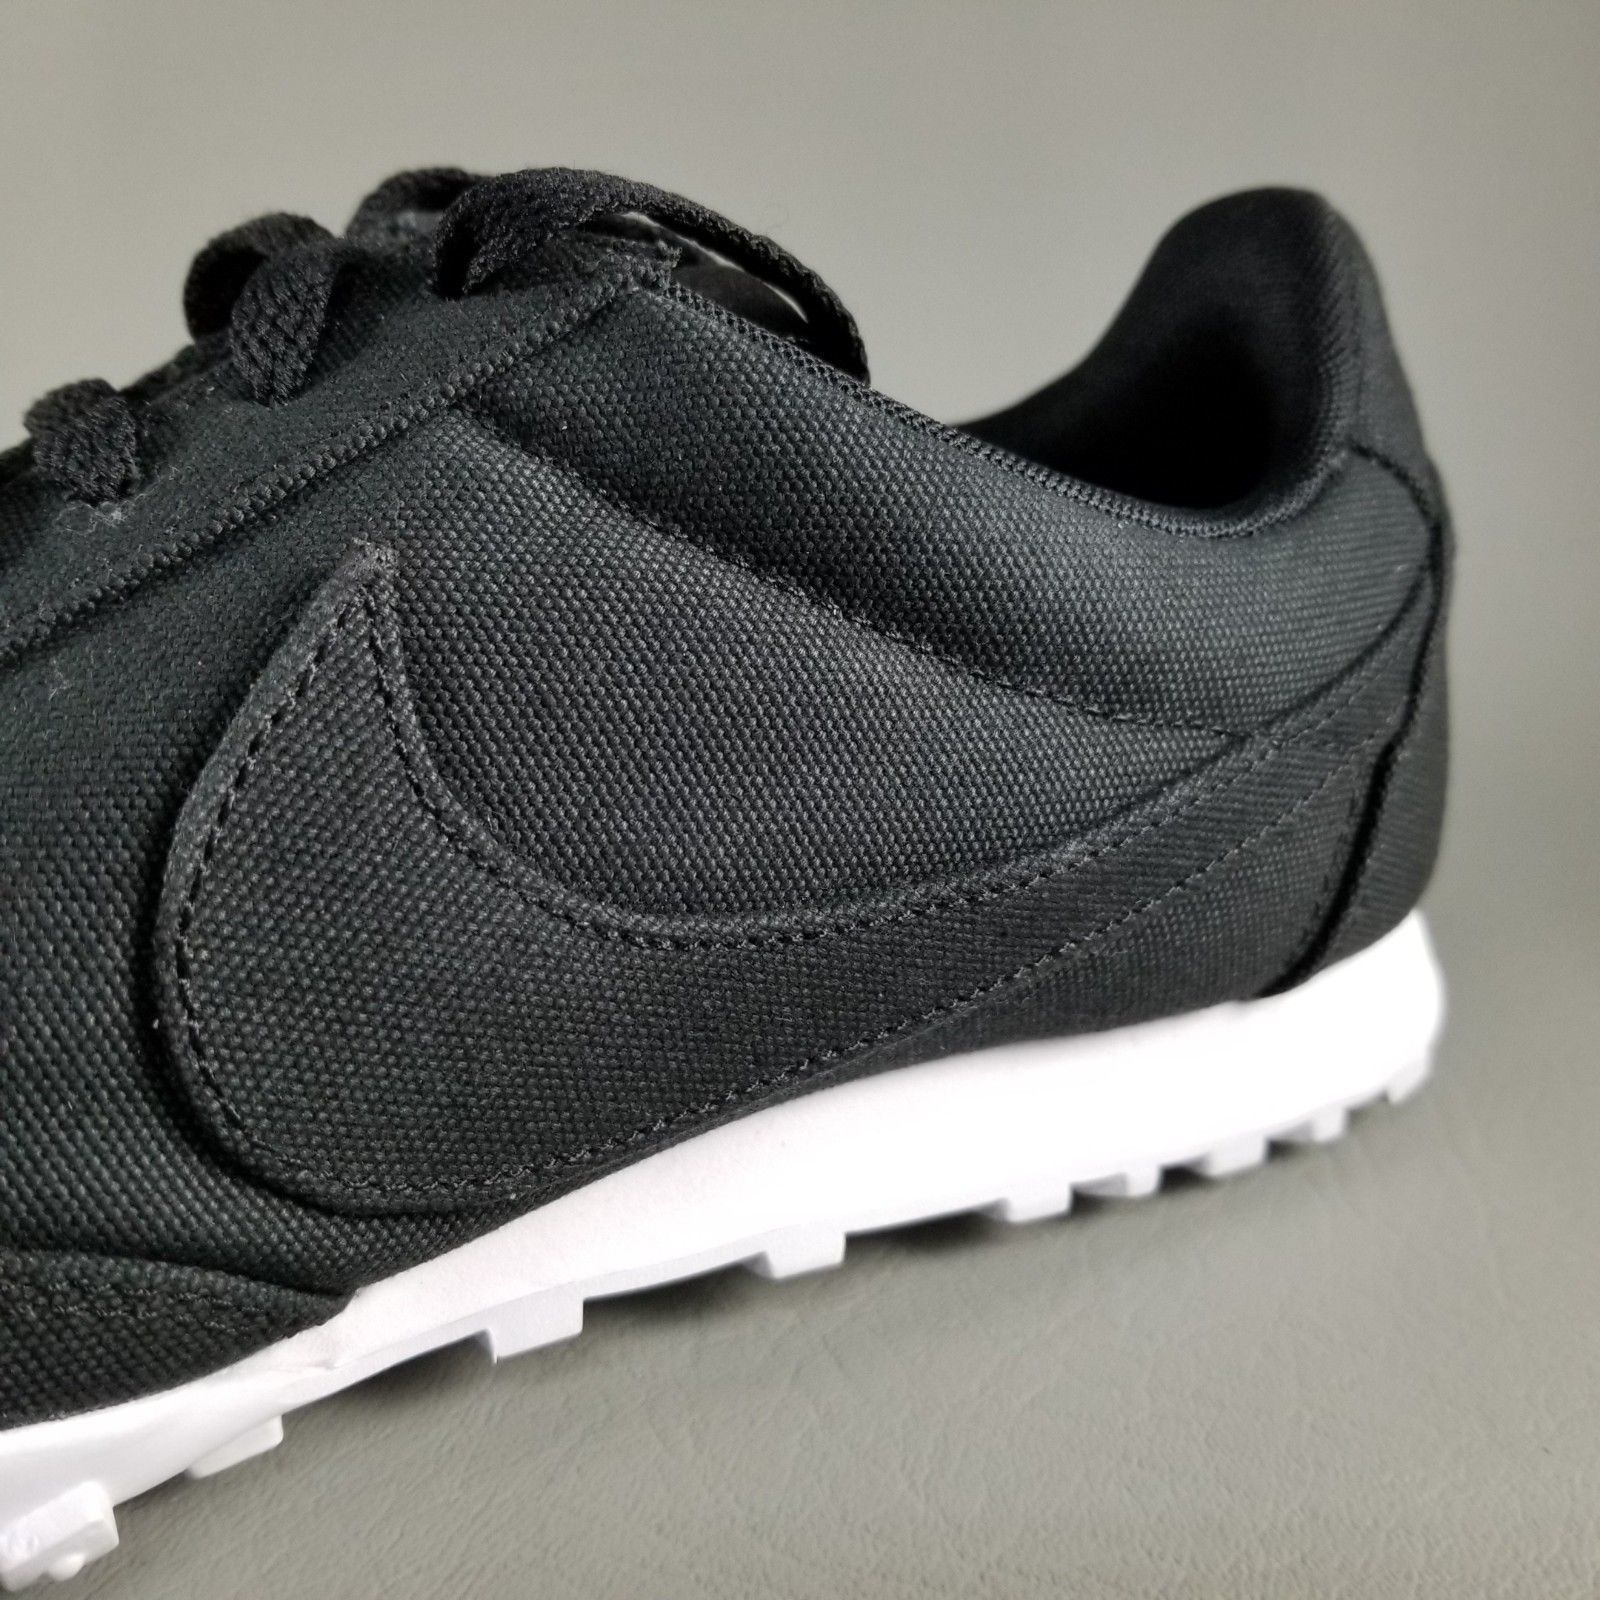 919dd13daa1 ... Nike Waffle Racer 17 Textile Men s Size 10 Athletic Running Sneakers  Shoes Black